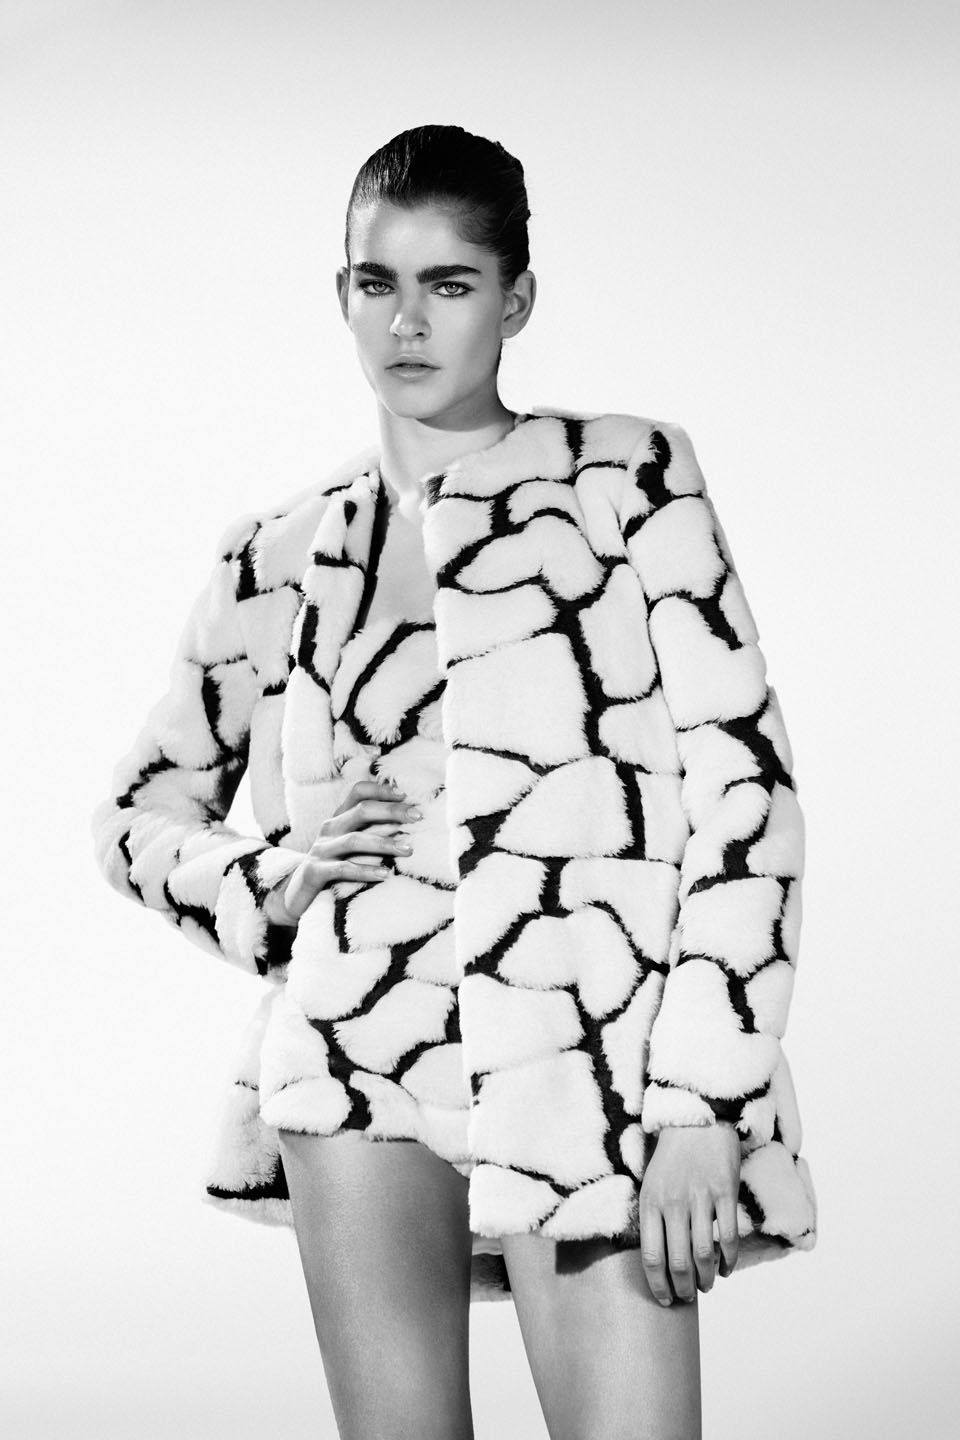 Nanna van Blaaderen — Knit design for fashion and home textiles